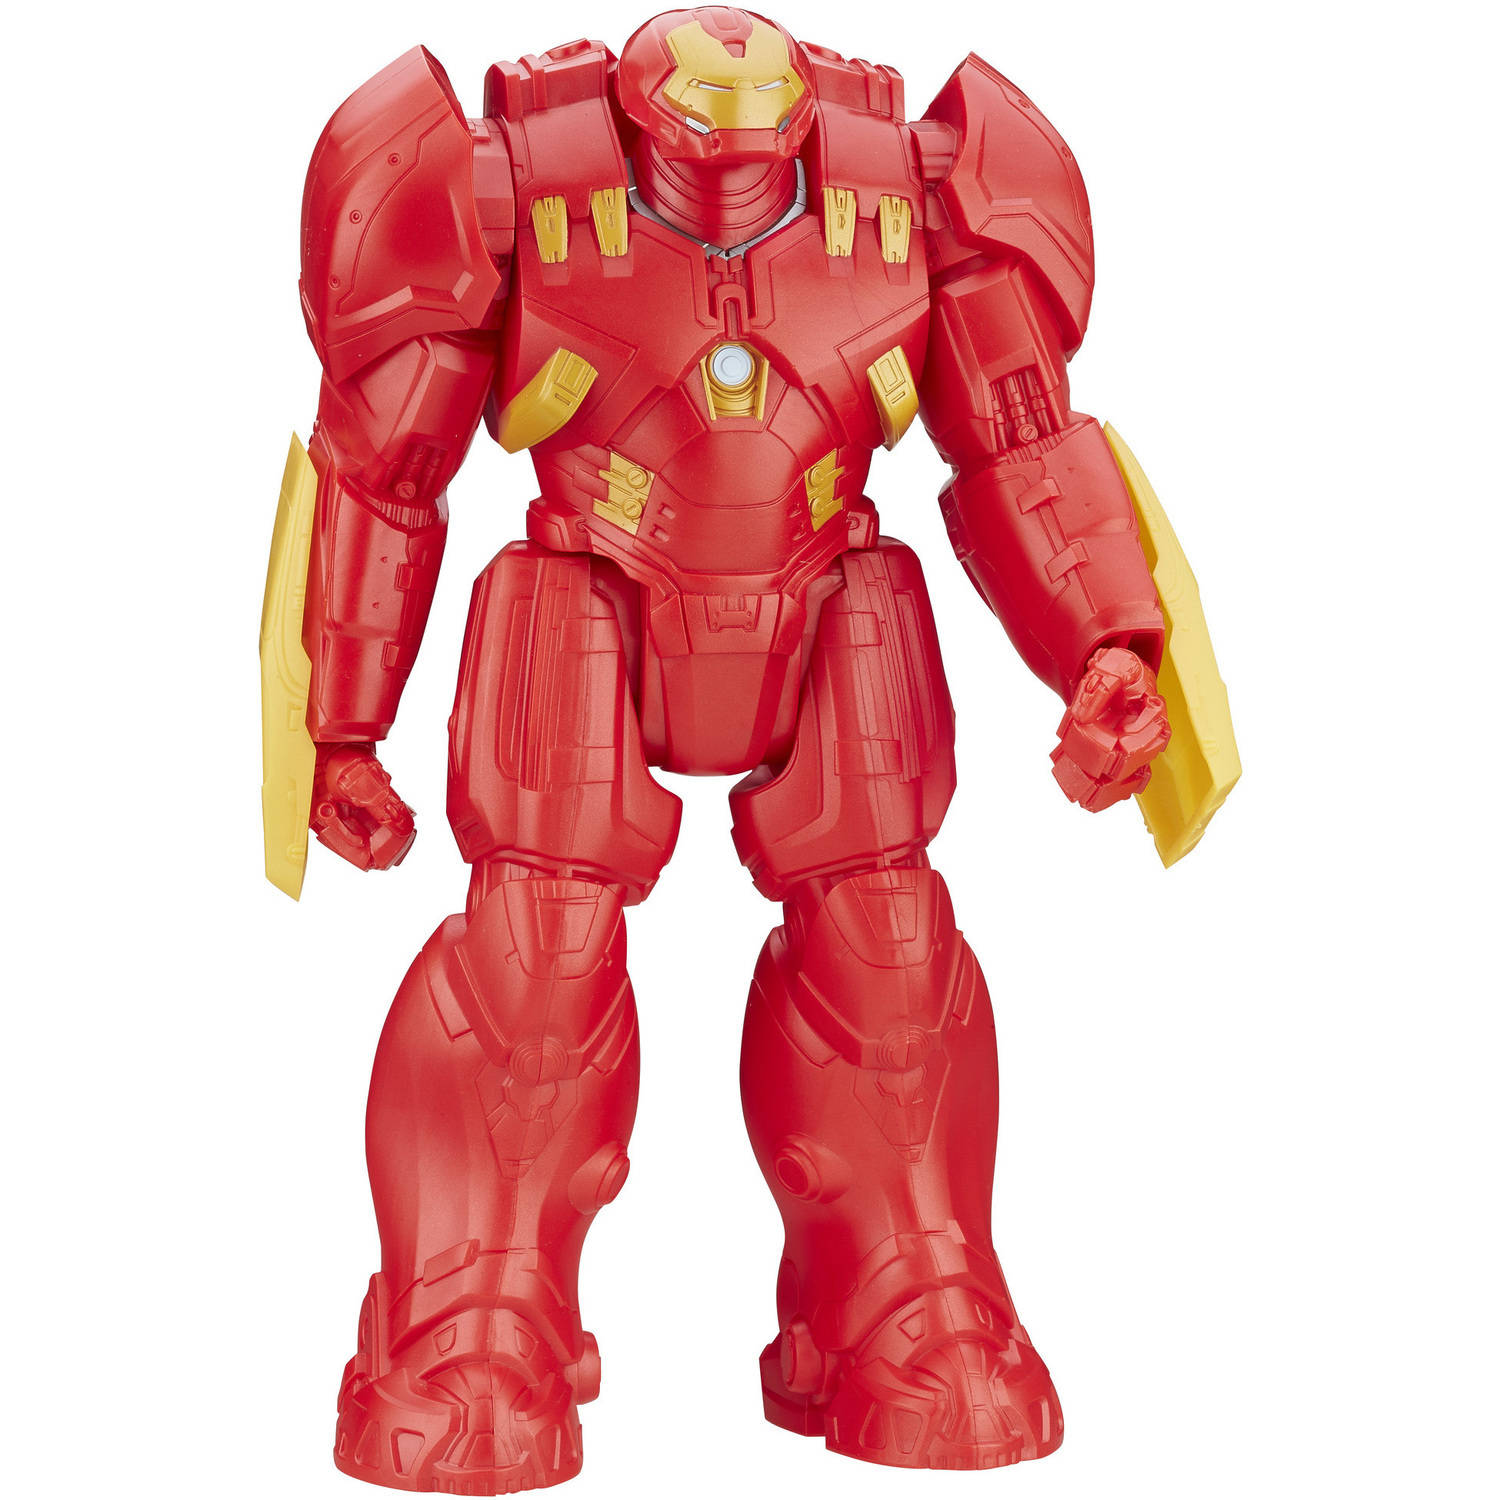 Marvel Titan Hero Series Hulkbuster Image 1 of 2